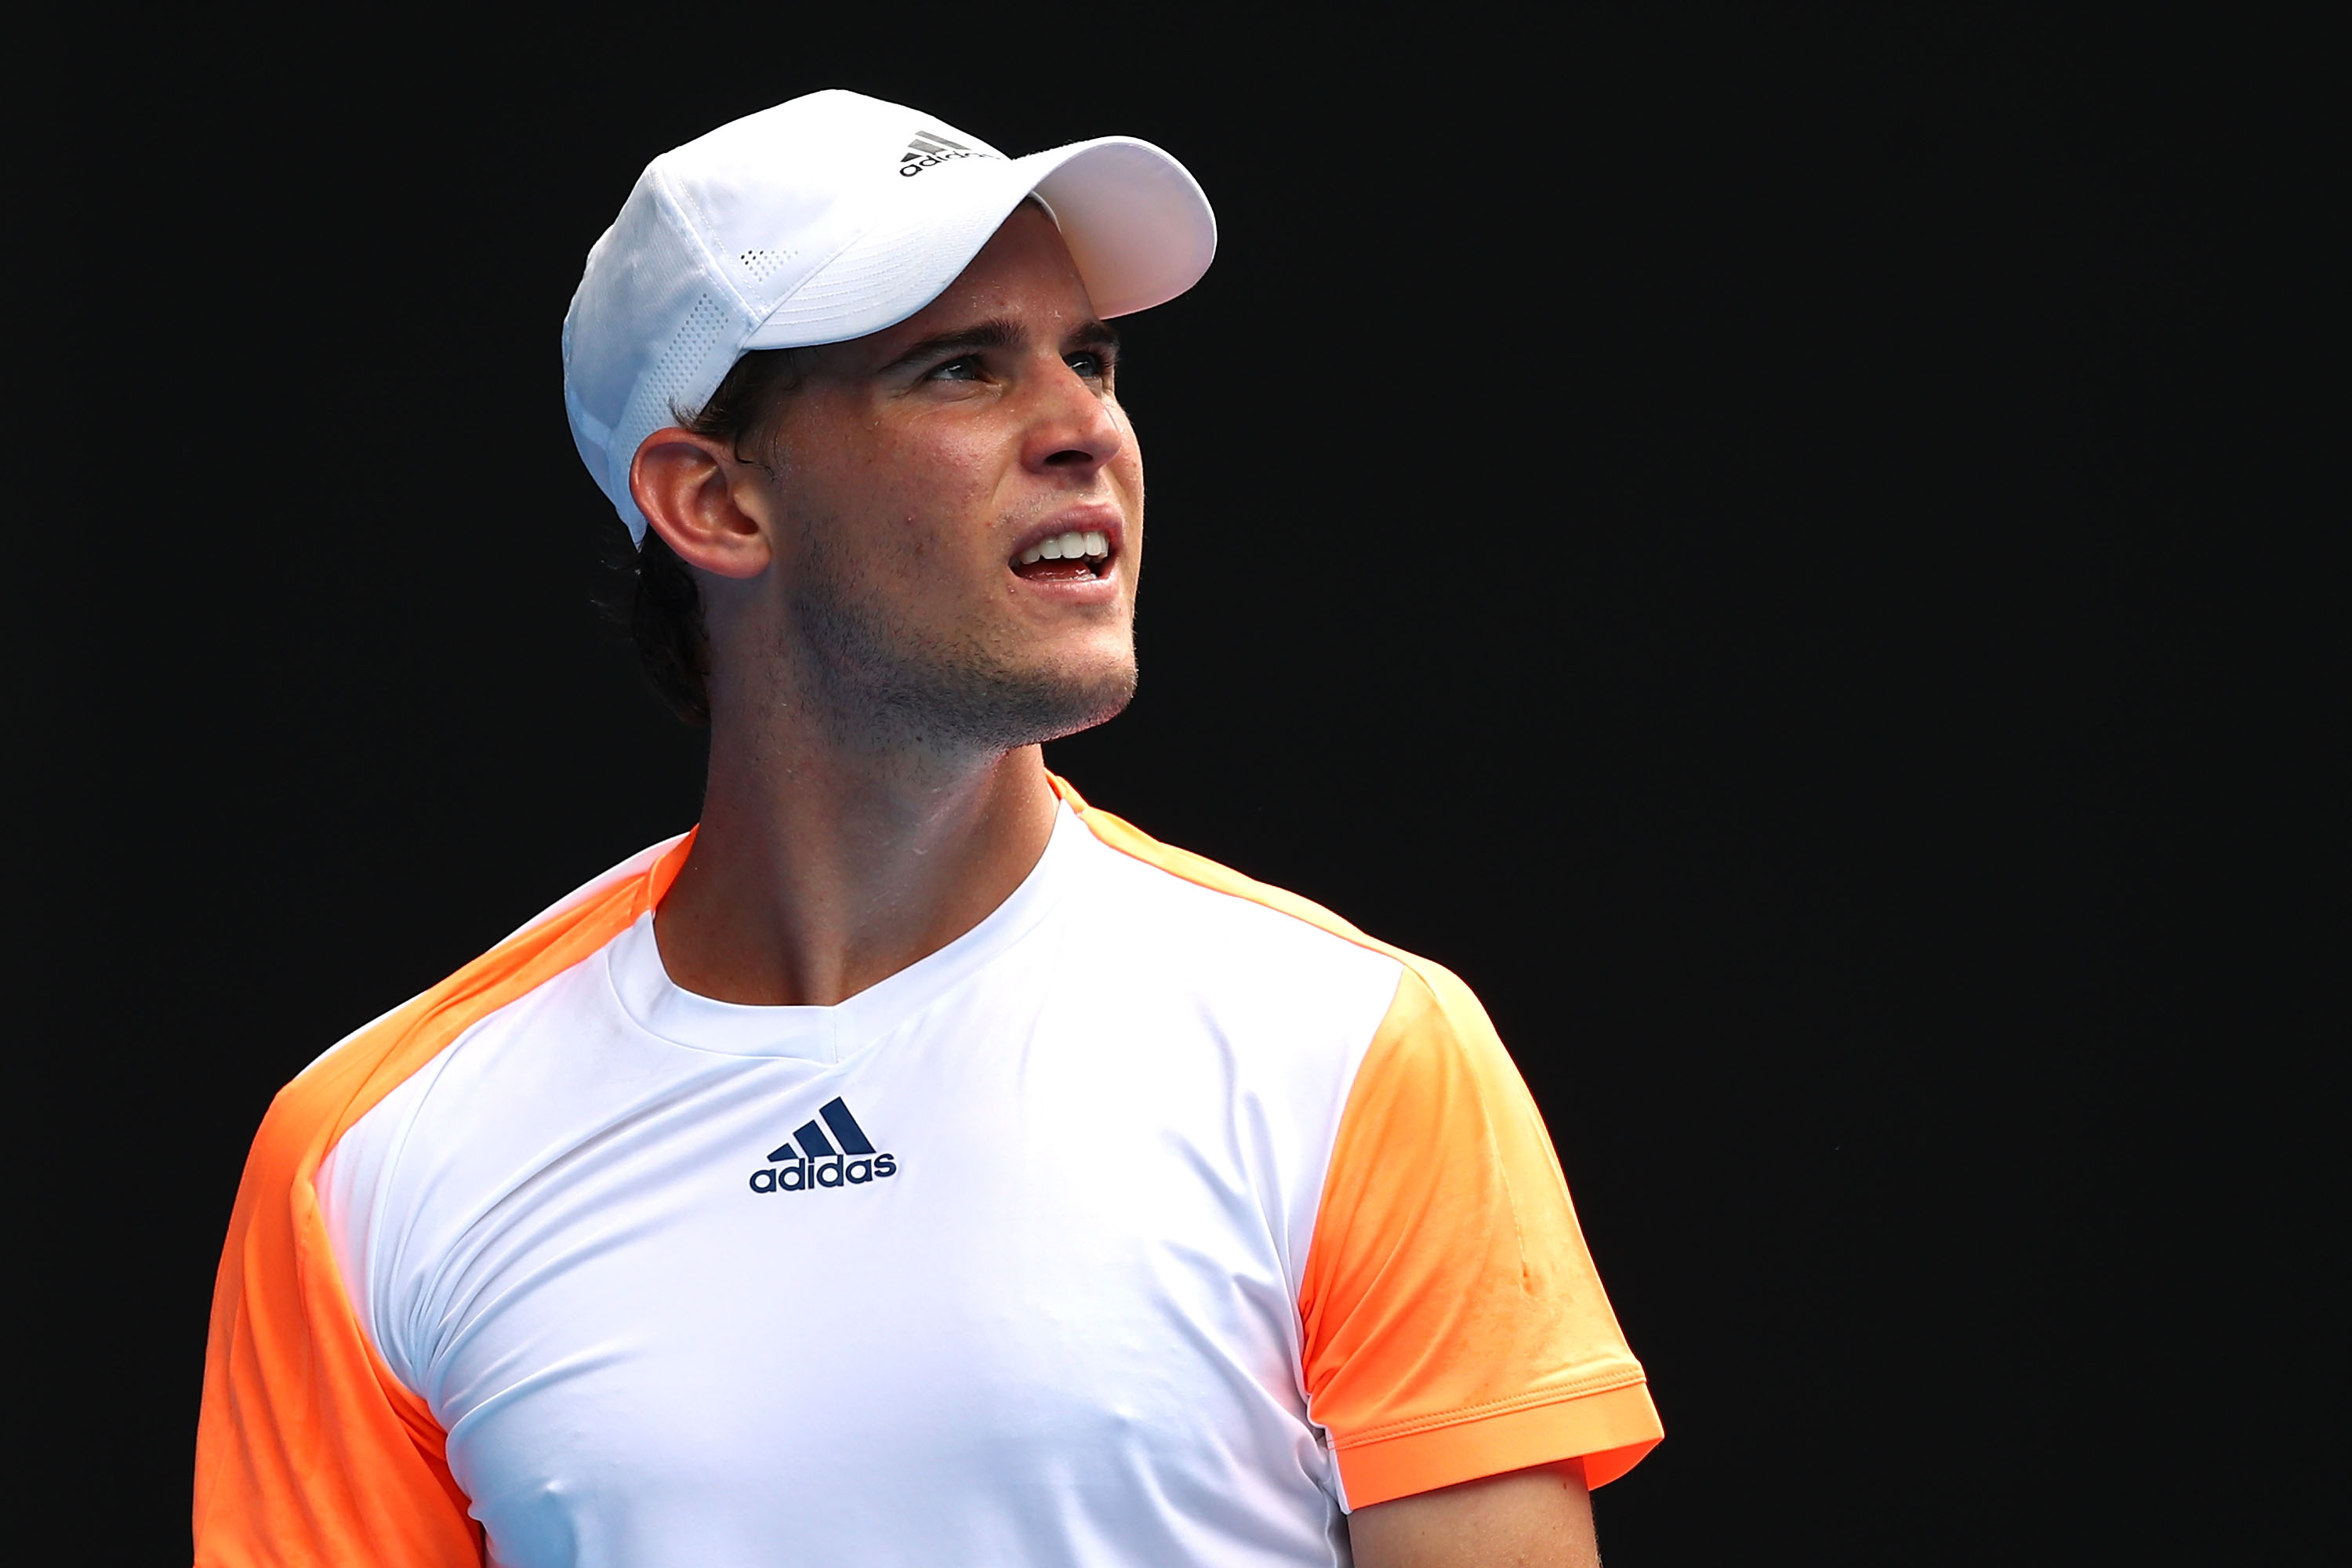 MELBOURNE, AUSTRALIA - JANUARY 23:  Dominic Thiem of Austria looks on in his fourth round match against David Goffin of Belgium on day eight of the 2017 Australian Open at Melbourne Park on January 23, 2017 in Melbourne, Australia.  (Photo by Cameron Spen